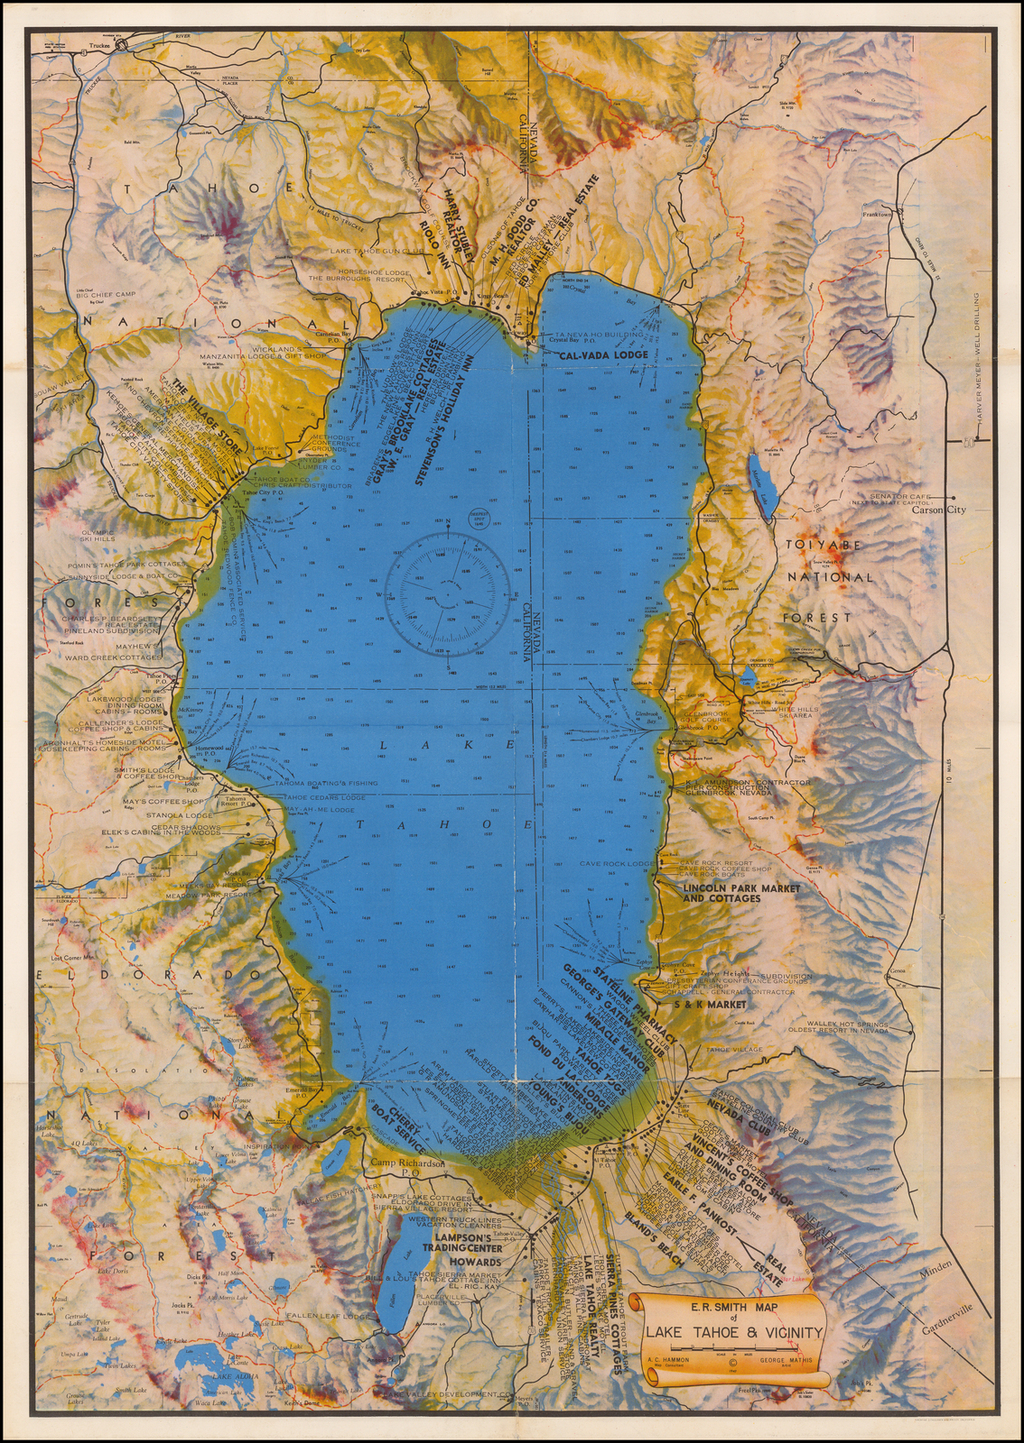 E.R. Smith Map of Lake Tahoe & Vicinity By E. R. Smith